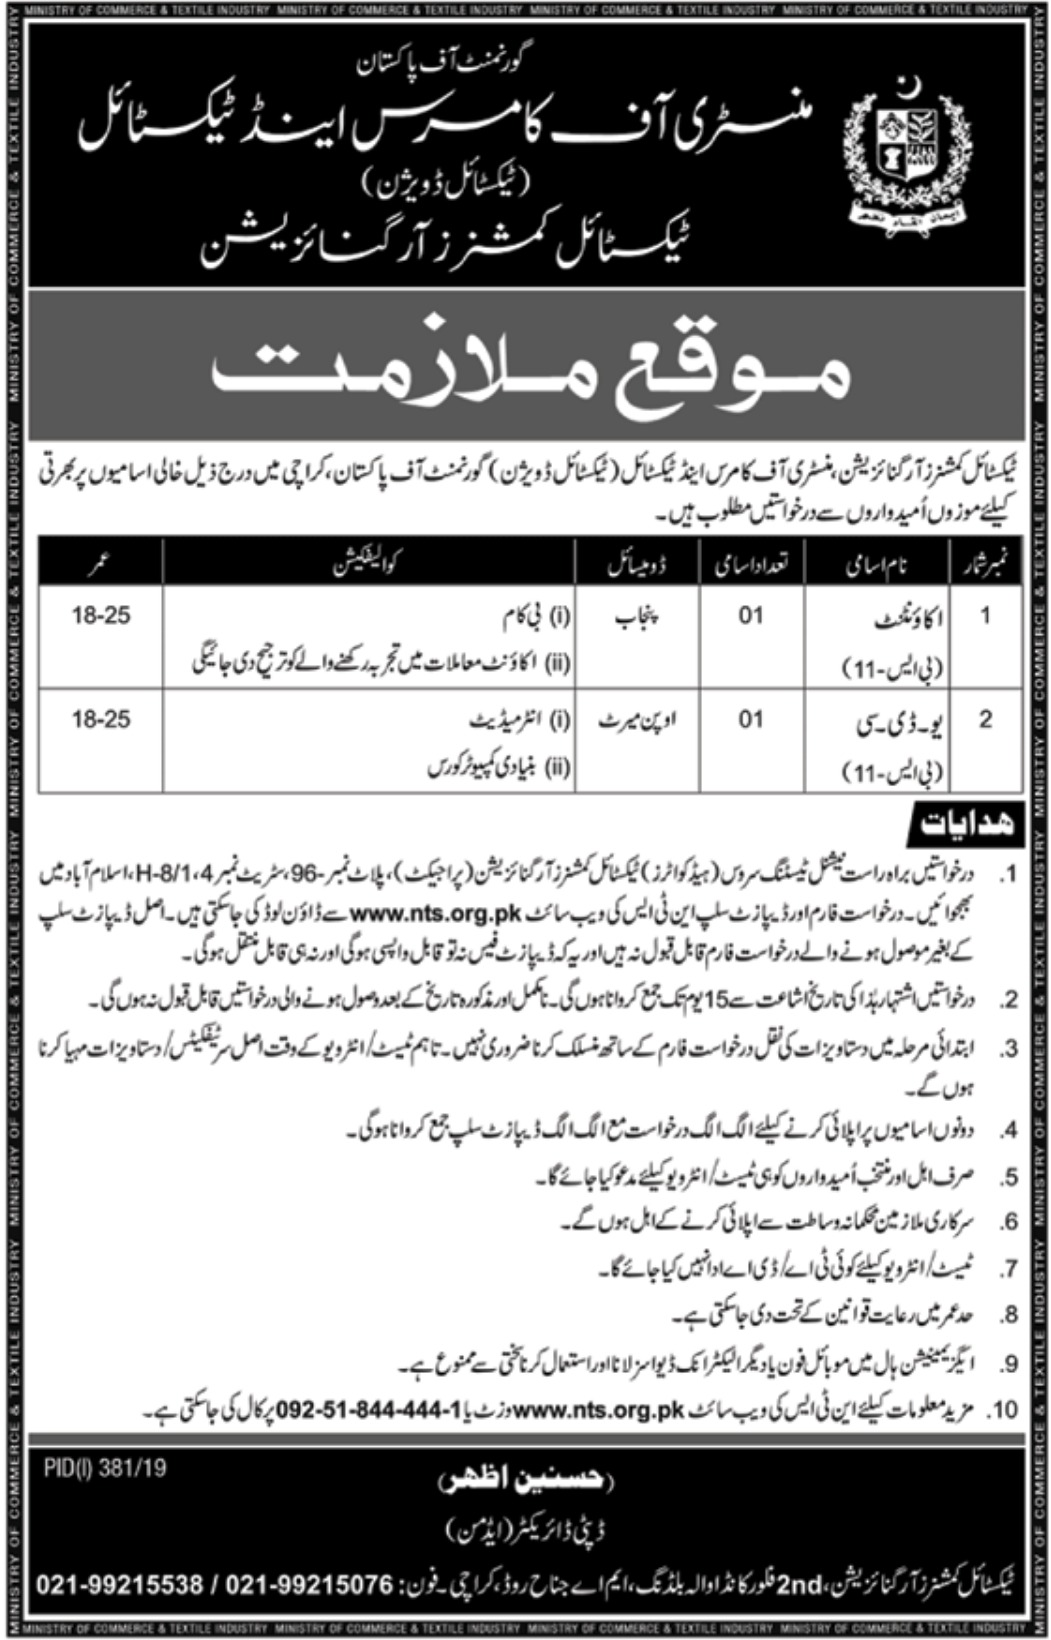 Ministry of Commerce & Textile Jobs 2019 Download NTS Application Form